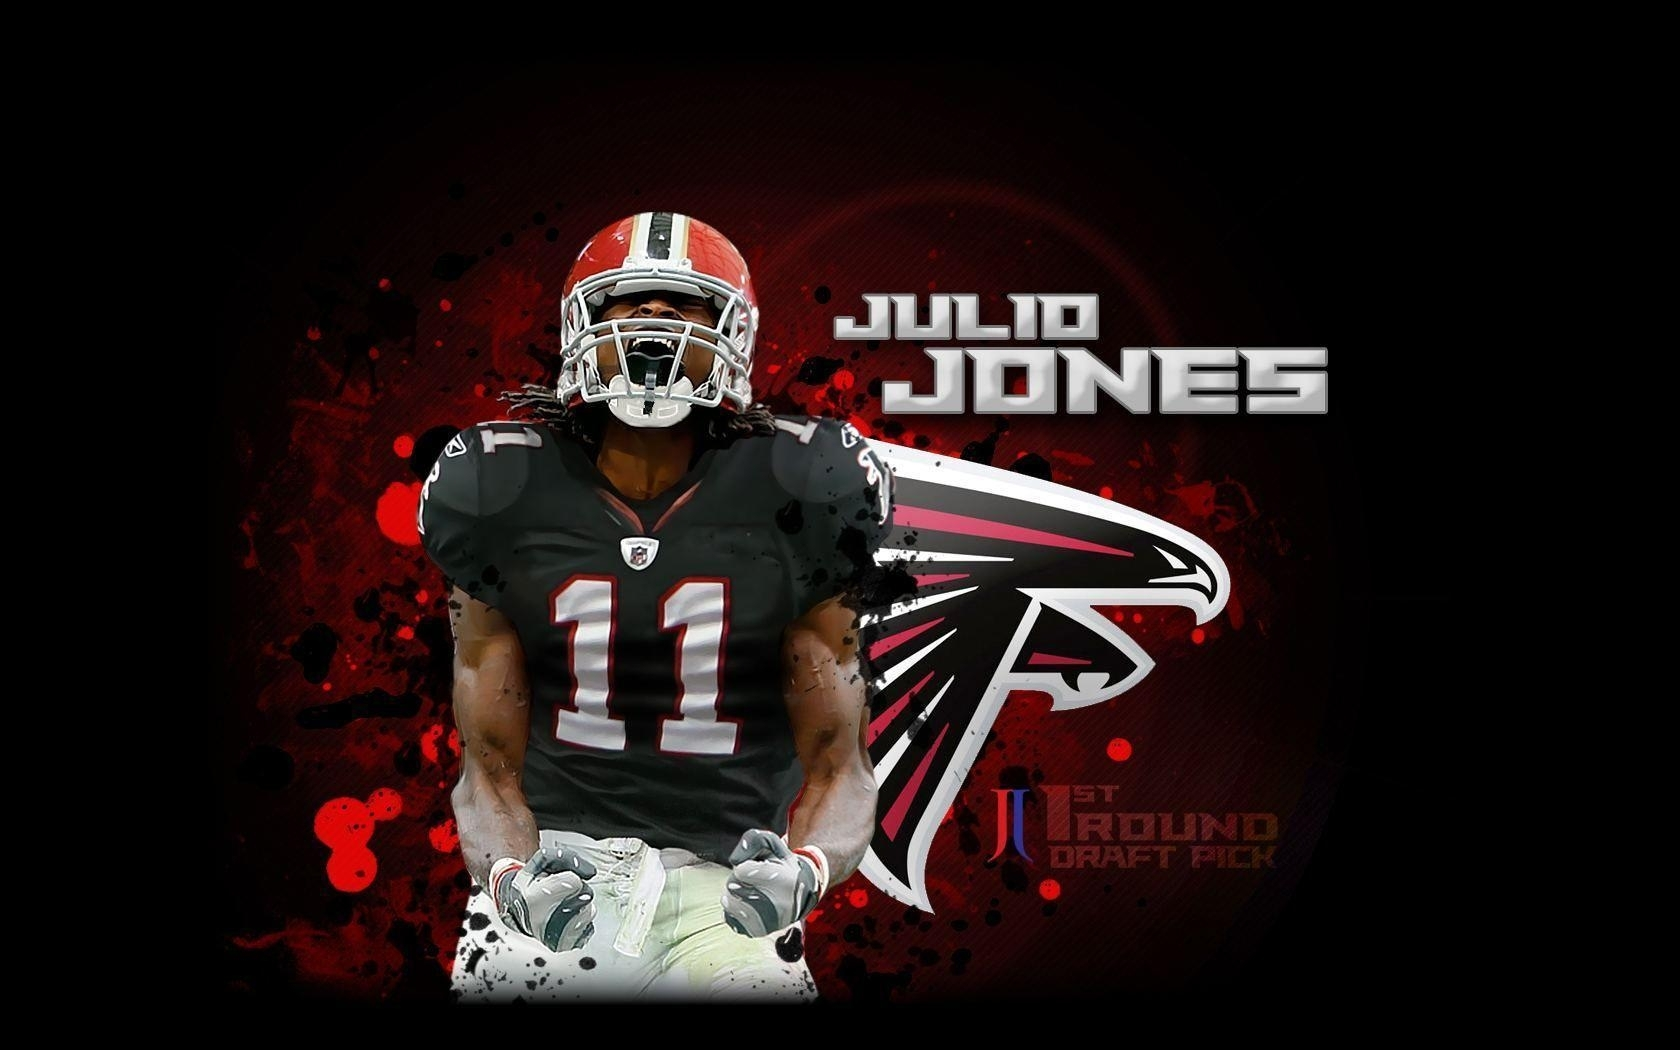 julio jones wallpapers - wallpaper cave